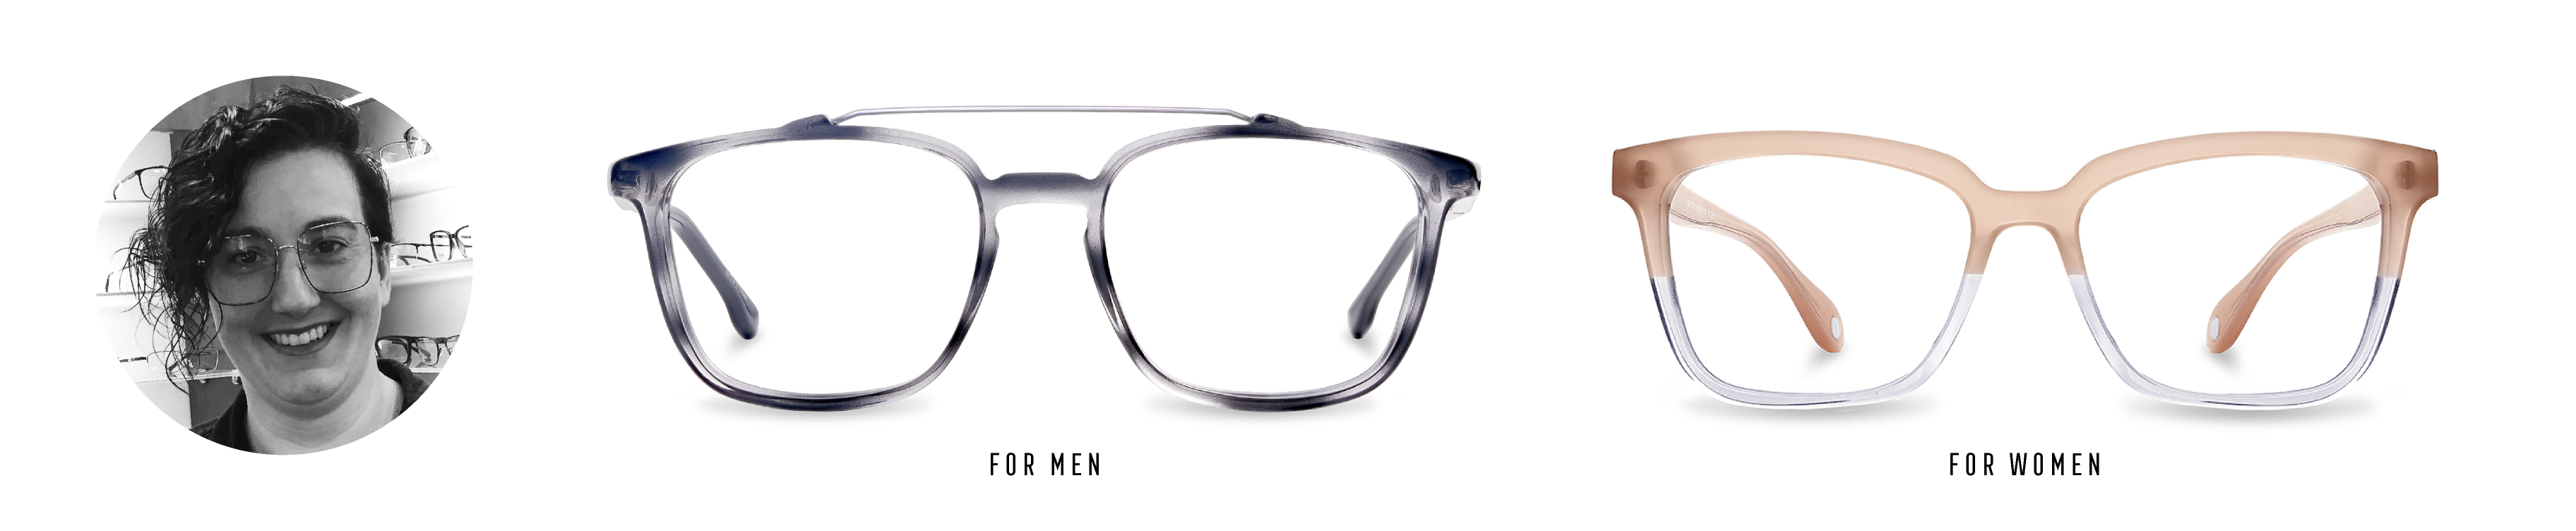 Debby Wickens from IRIS Iberville, Québec, picked two styles: the FYSH 3608157 and the Hugo Boss 1049